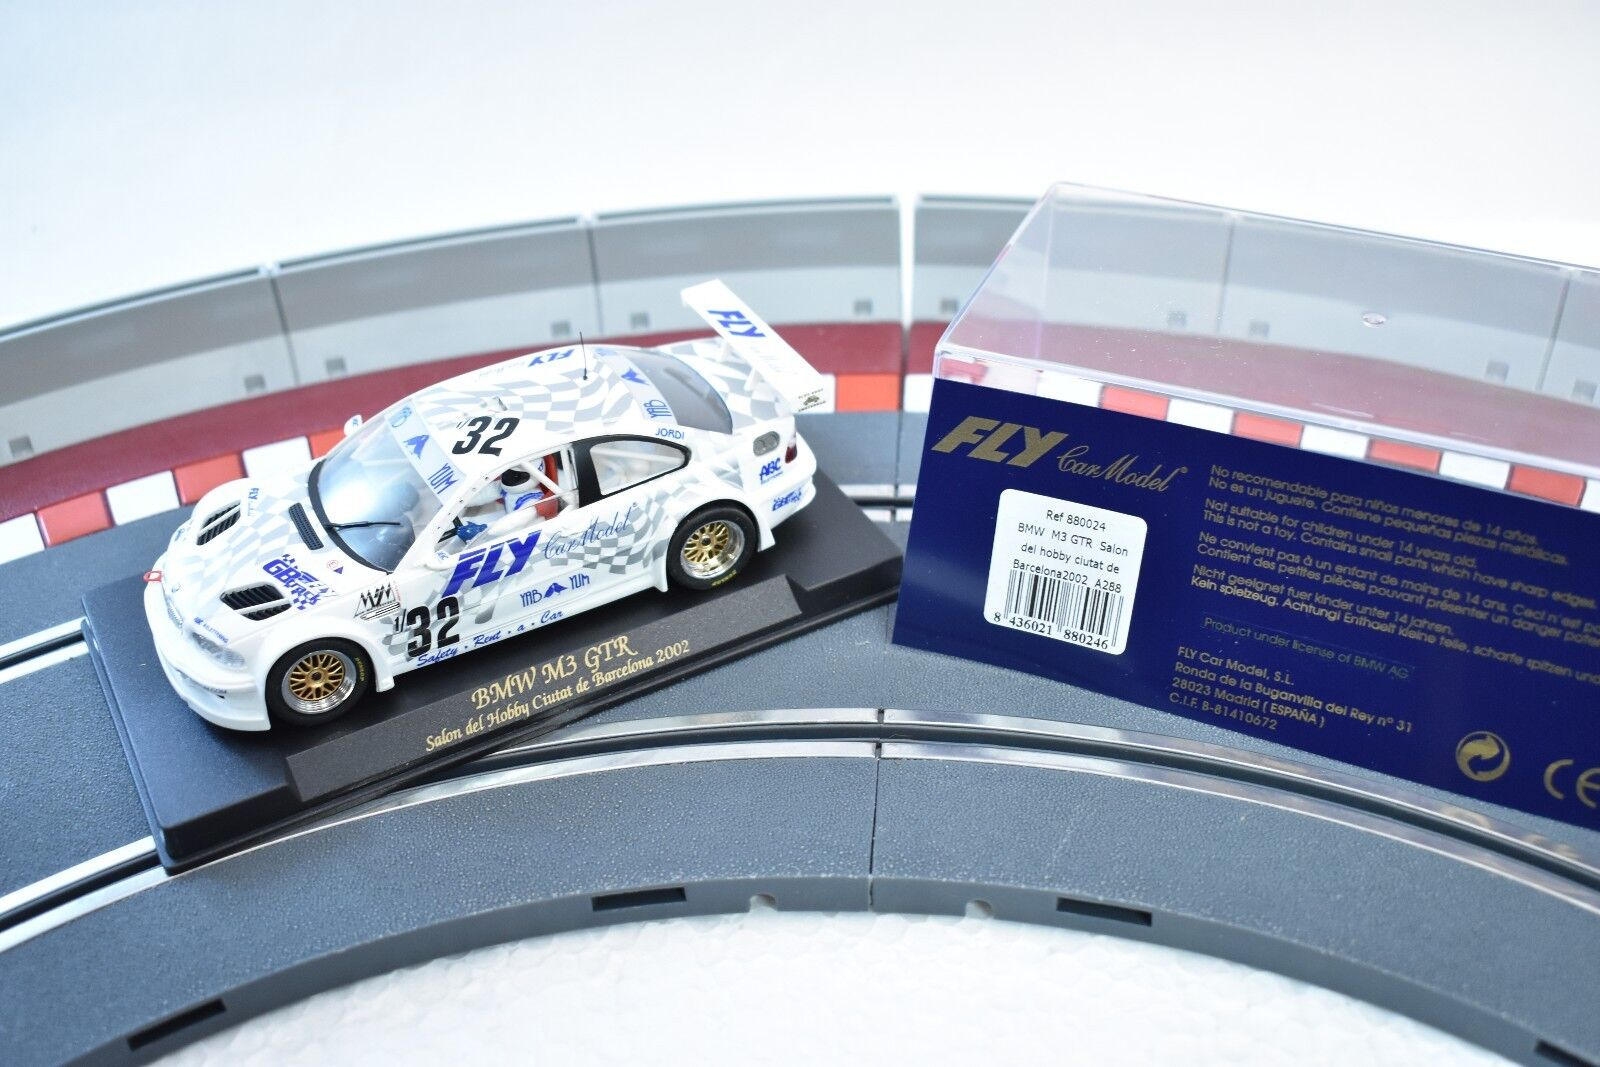 880024 FLY CAR MODEL 1 32 SLOT CAR BMW M3 GTR SAION DEL HOBBY CIUTAT 2002